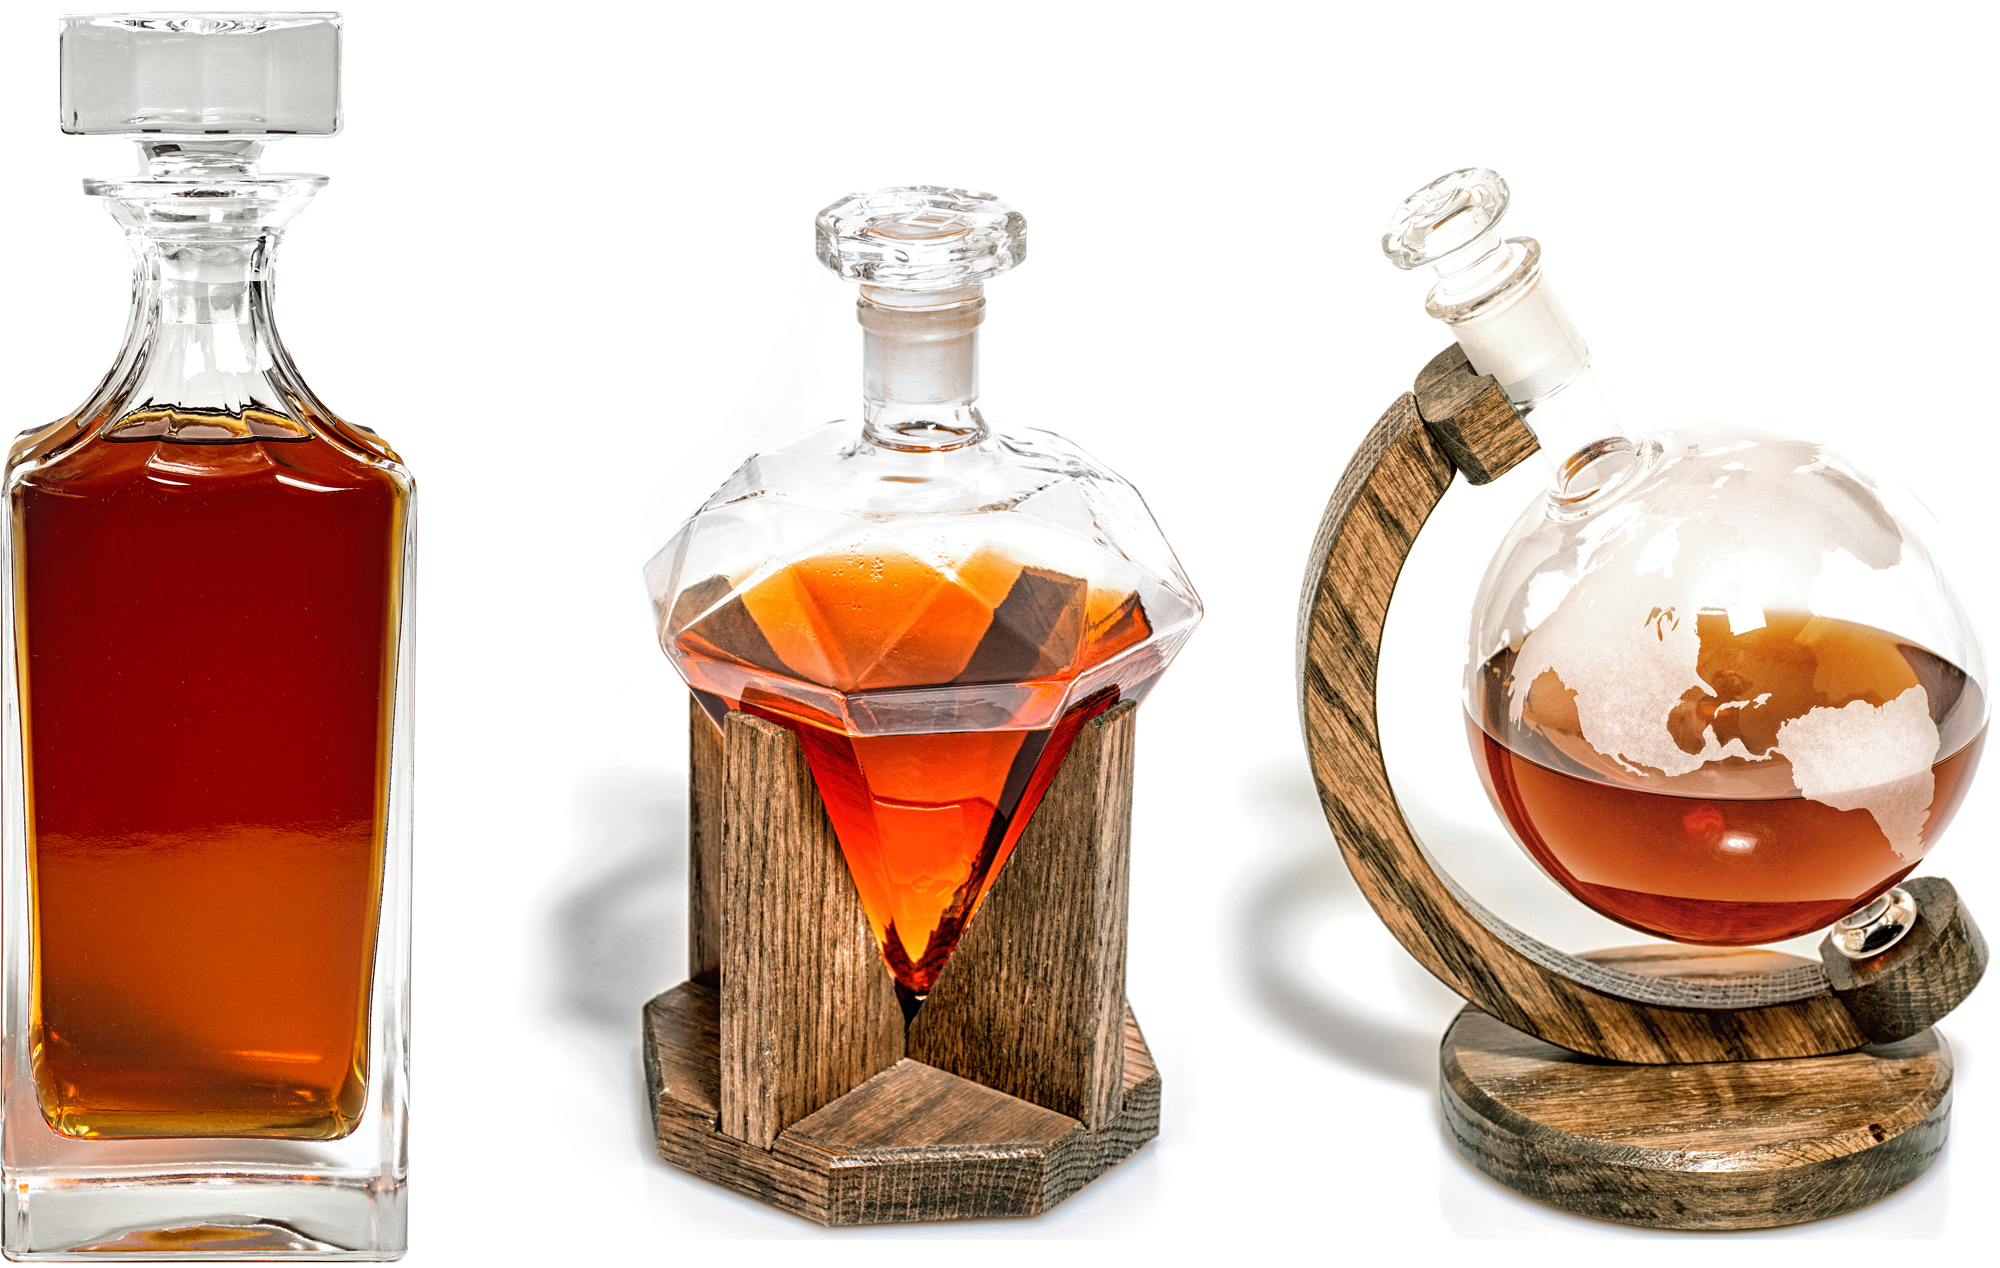 Grab and Pour Decanters, classic grab and pour decanters, the best decanters in our line up